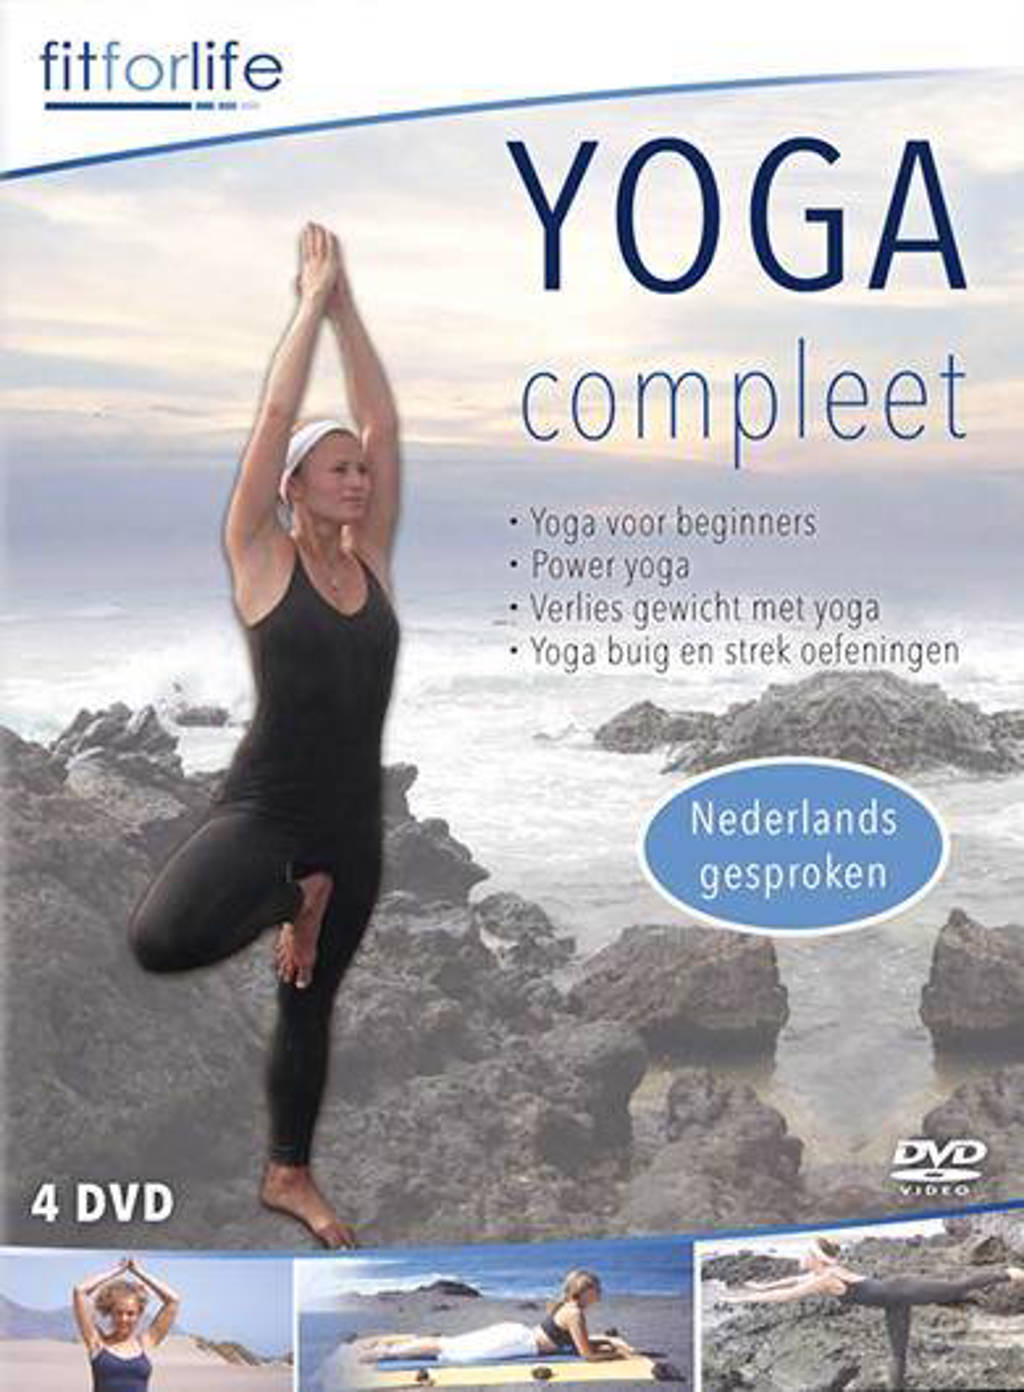 Fit for life - Yoga compleet (DVD)